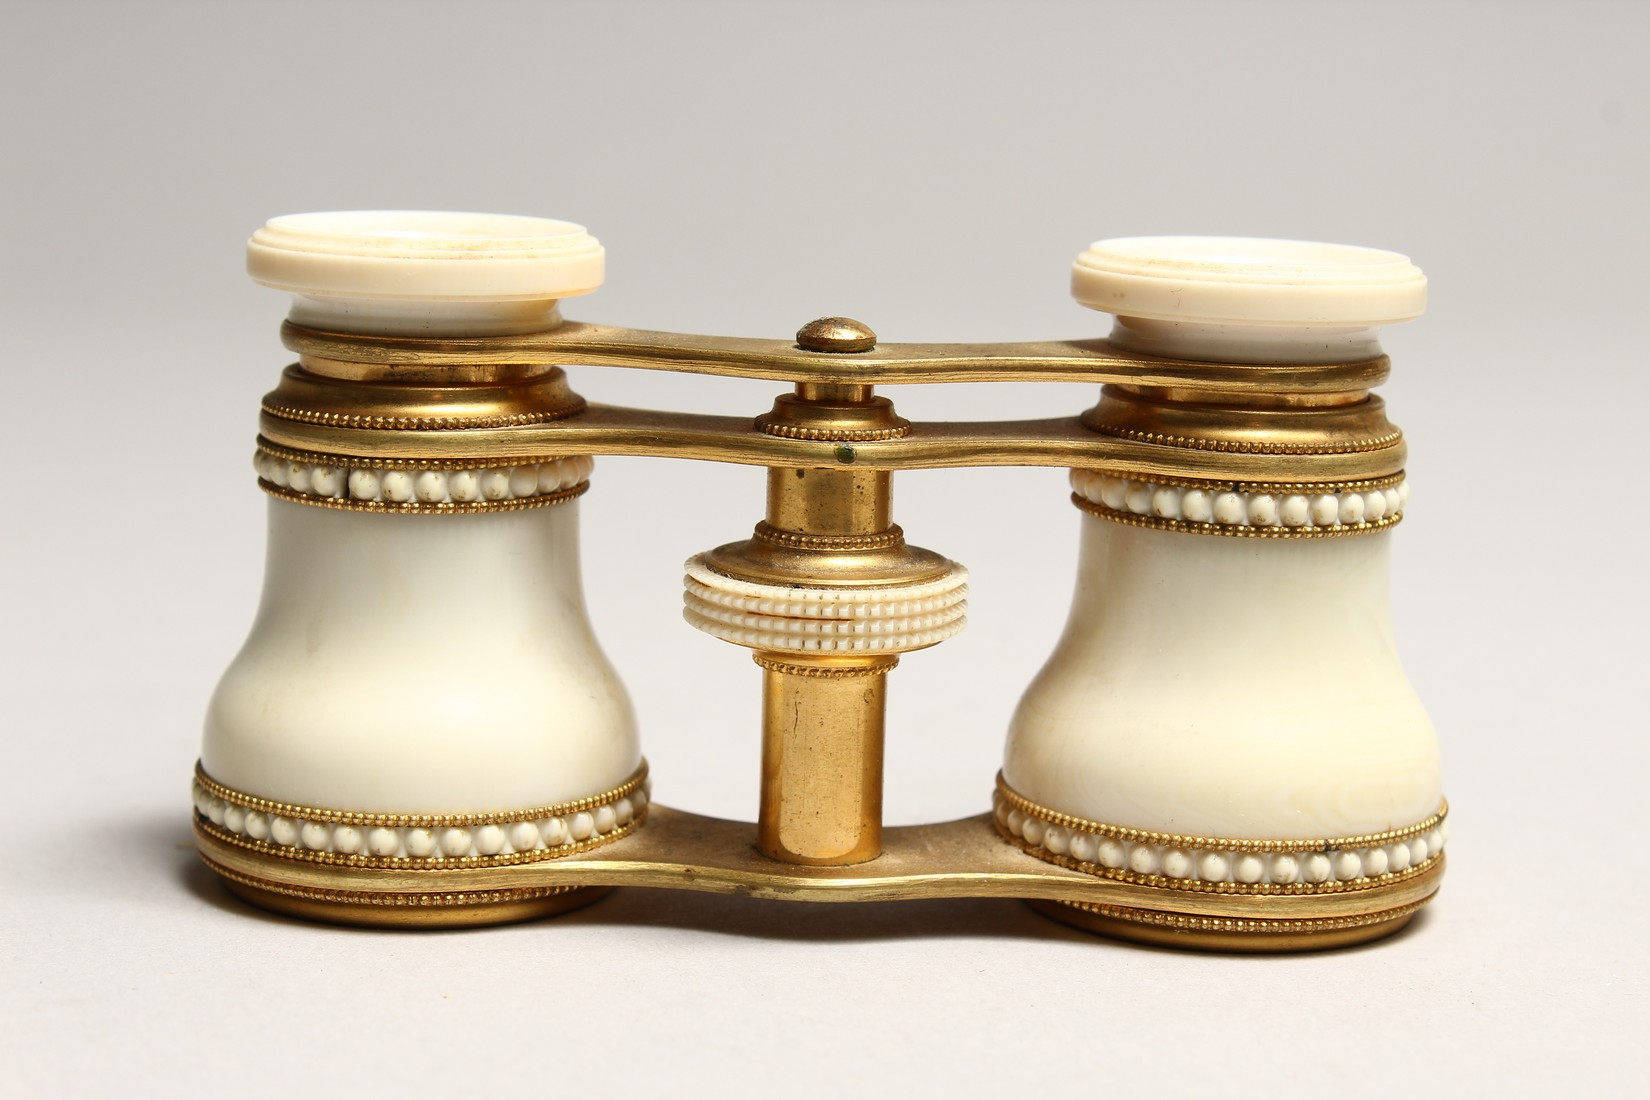 A PAIR OF IVORY AND GILT OPERA GLASSES 4.6ins long.